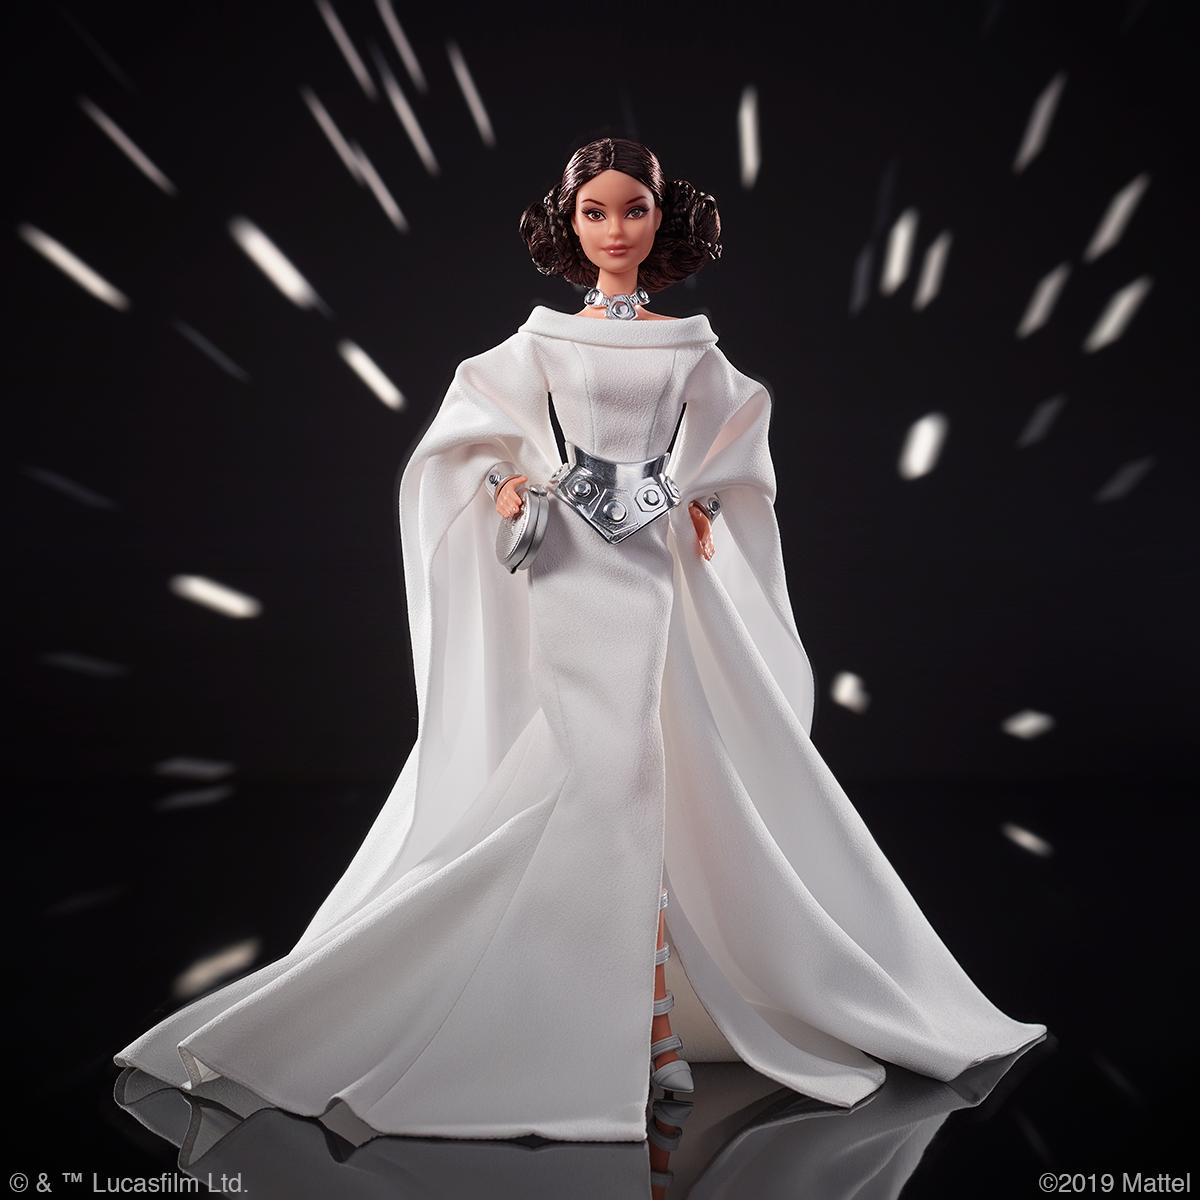 Princess Leia Star Wars Barbie Barbie gets into cosplay with new Star Wars line